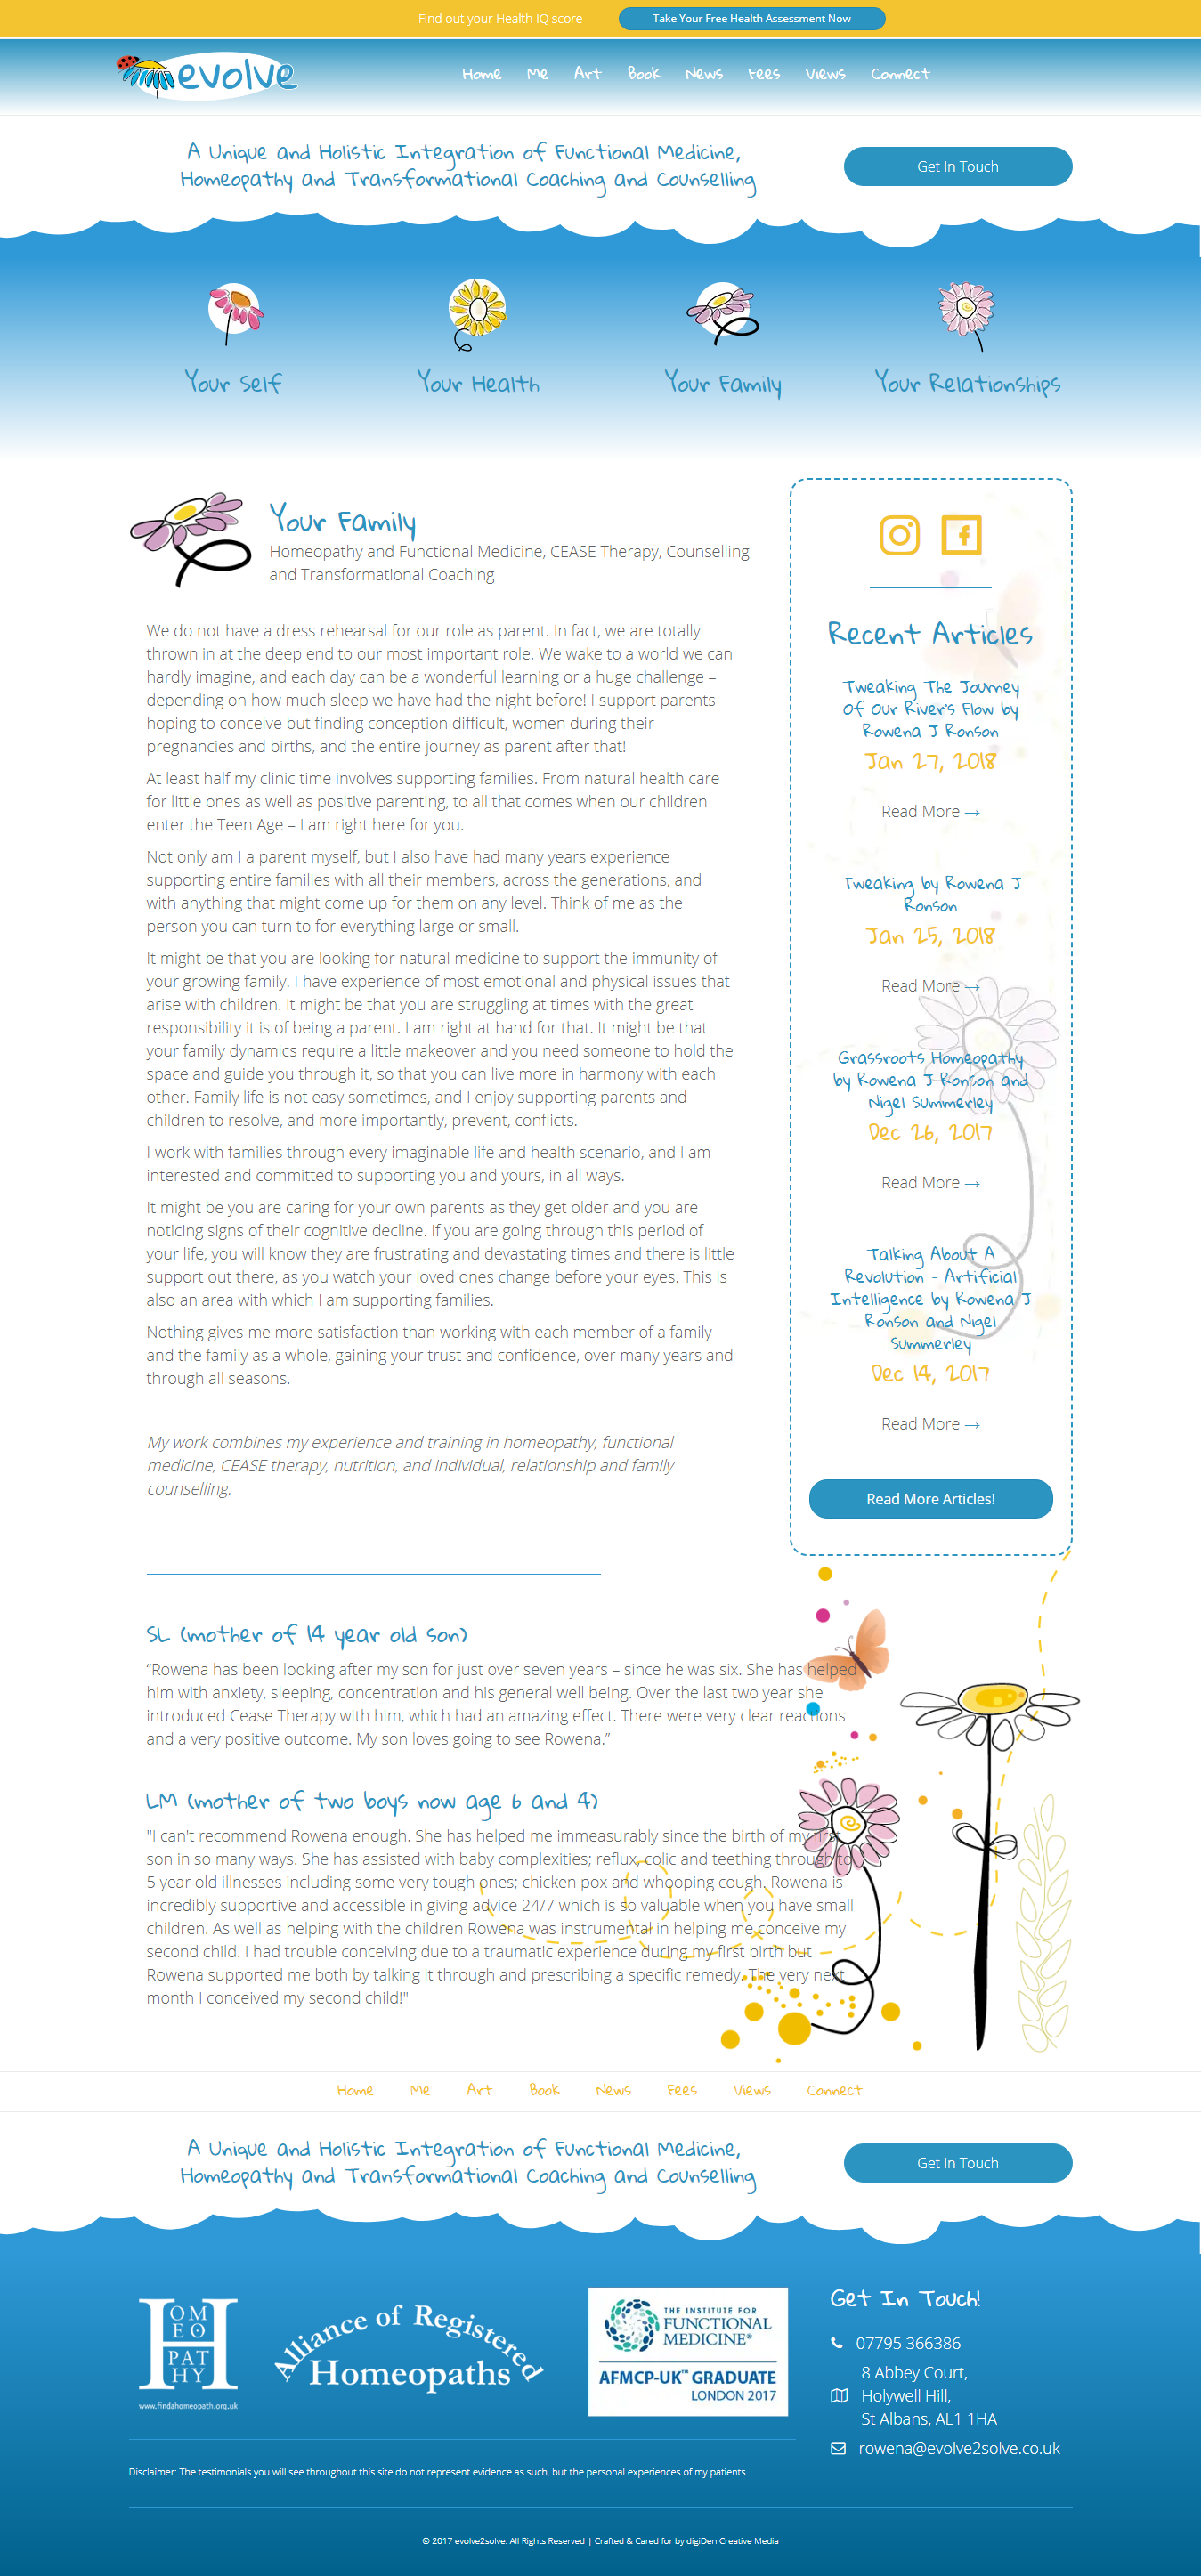 Specilist-page-evolve2solve-homeopathy